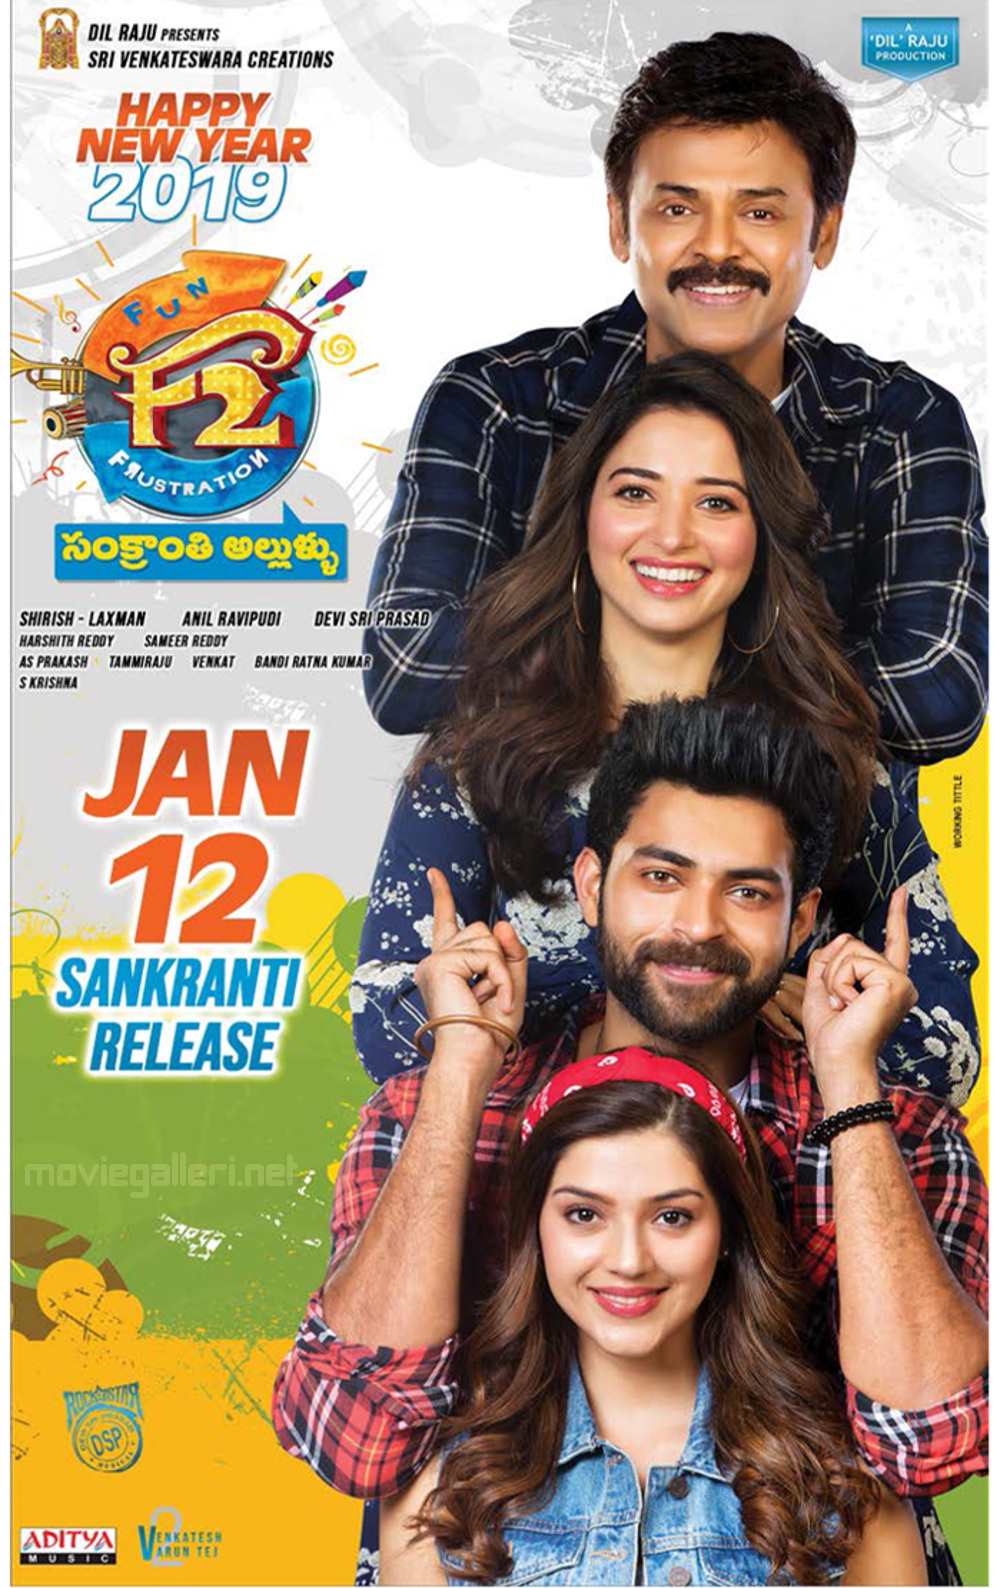 F2 Fun And Frustration New Year 2019 Wishes Posters HD